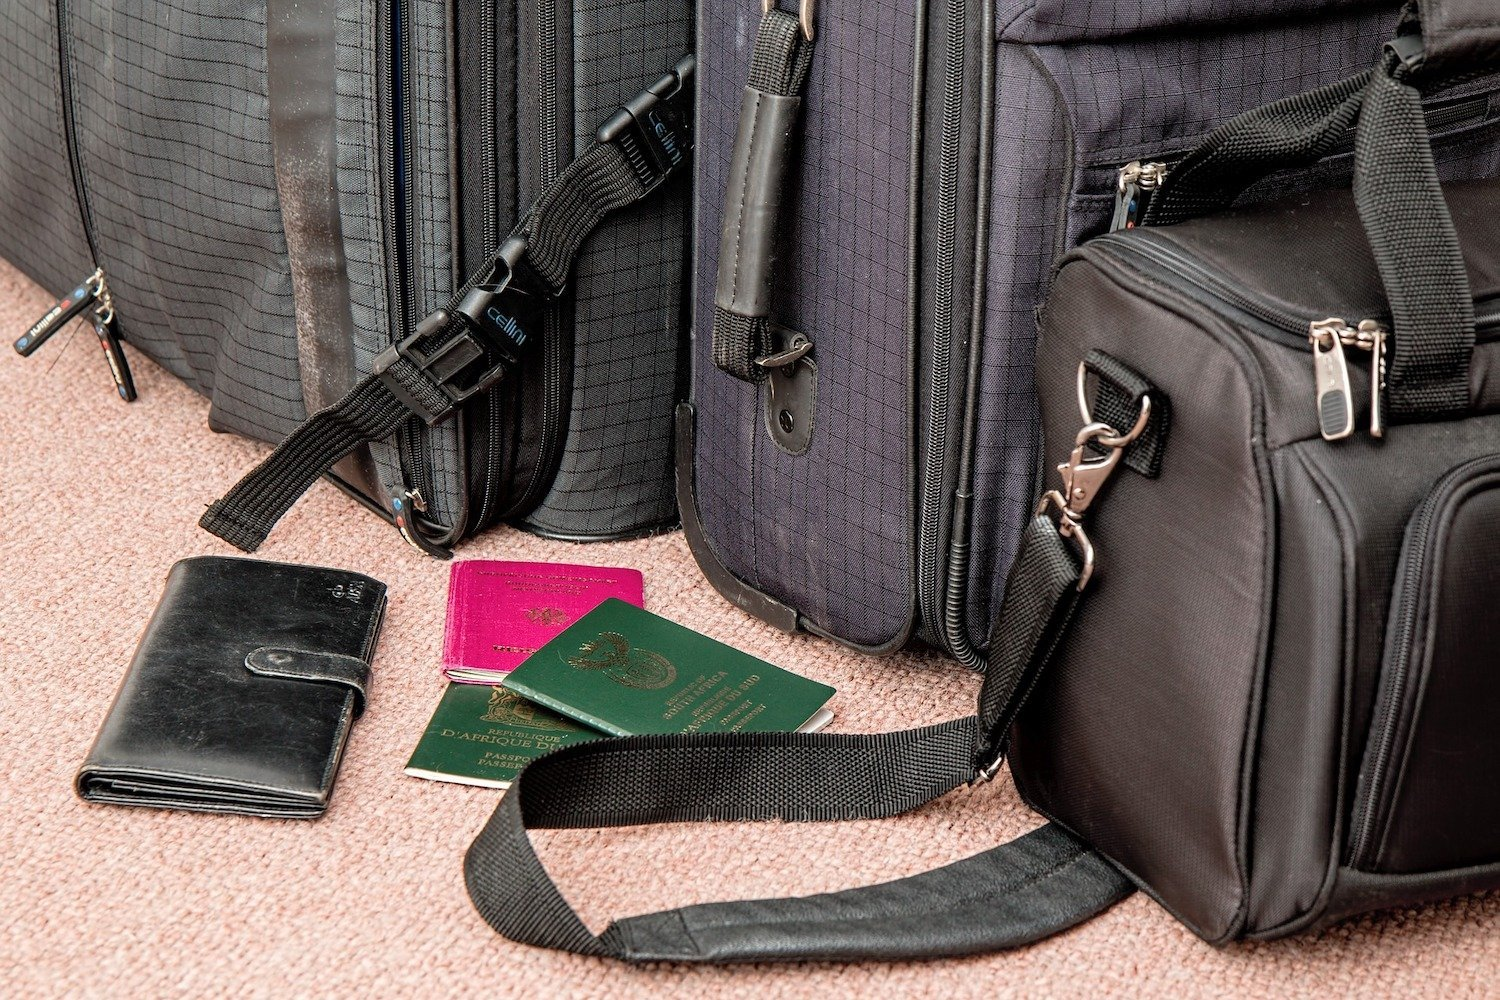 Travel bags and suitcases